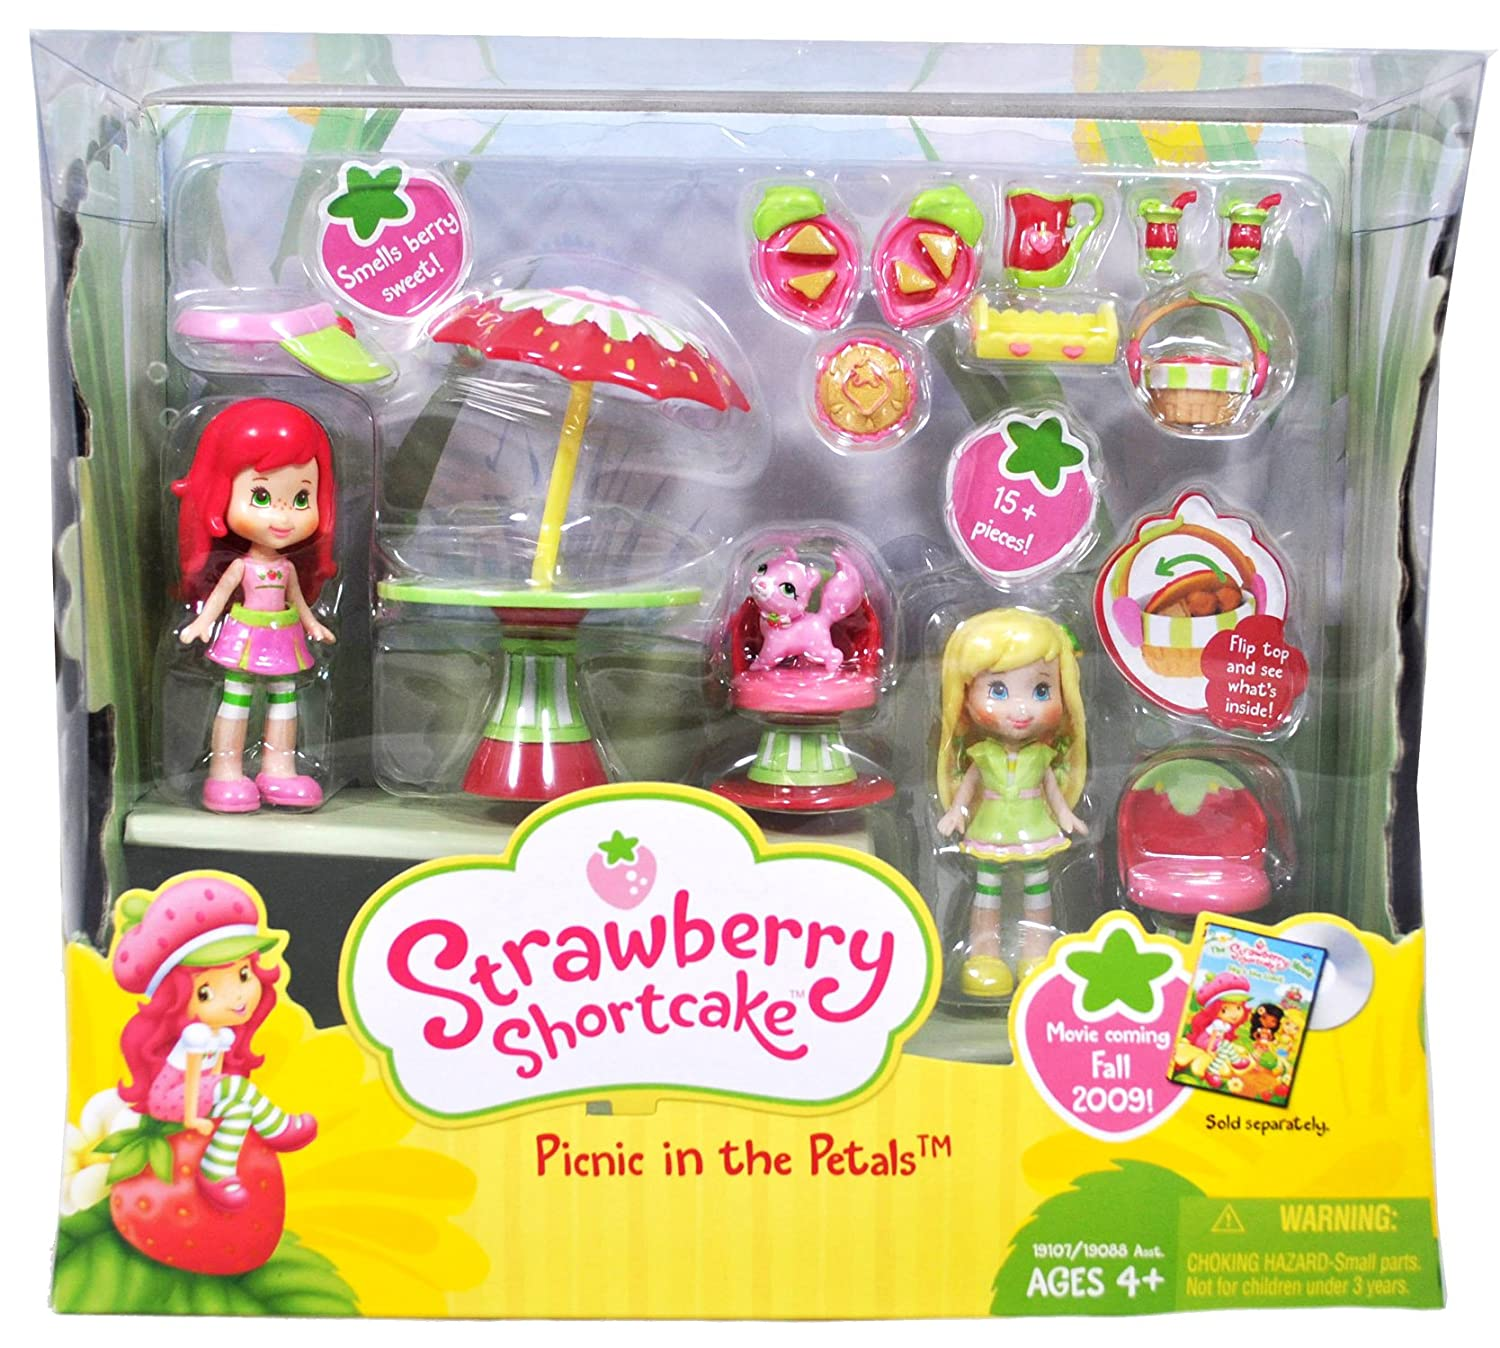 Strawberry Shortcake Berry Cafe Doll House Playset Toy Dolls